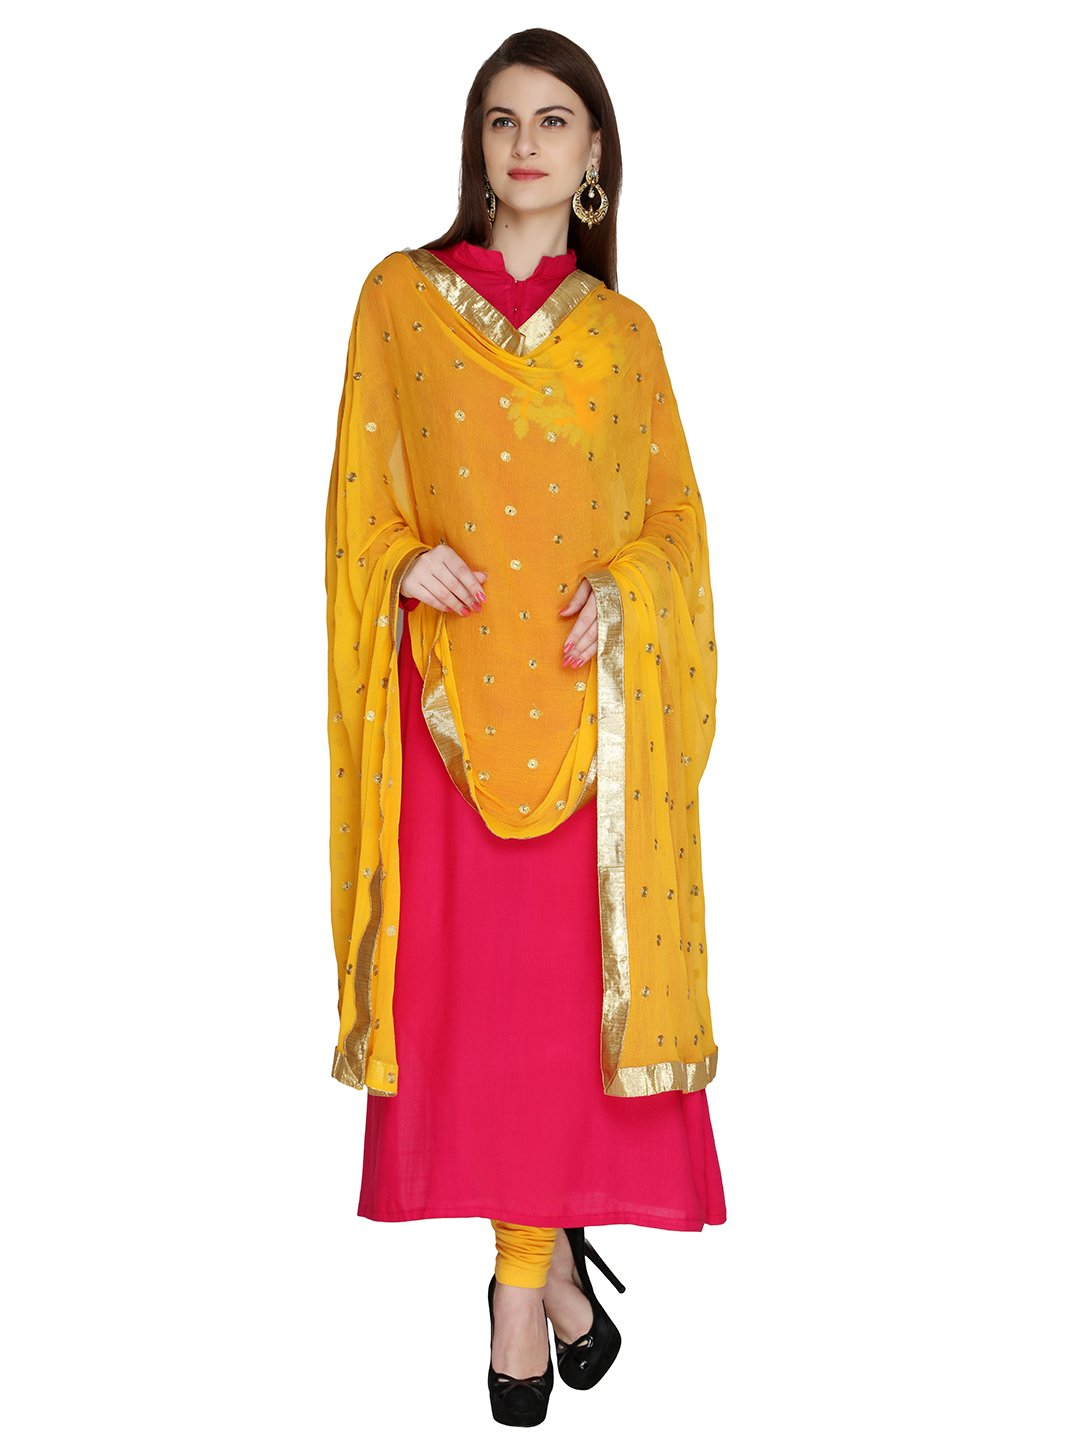 Dupatta Bazaar Woman's Embroidered Pink Chiffon Dupatta Scarf Shawl Wrap Soft (Yellow Gold)